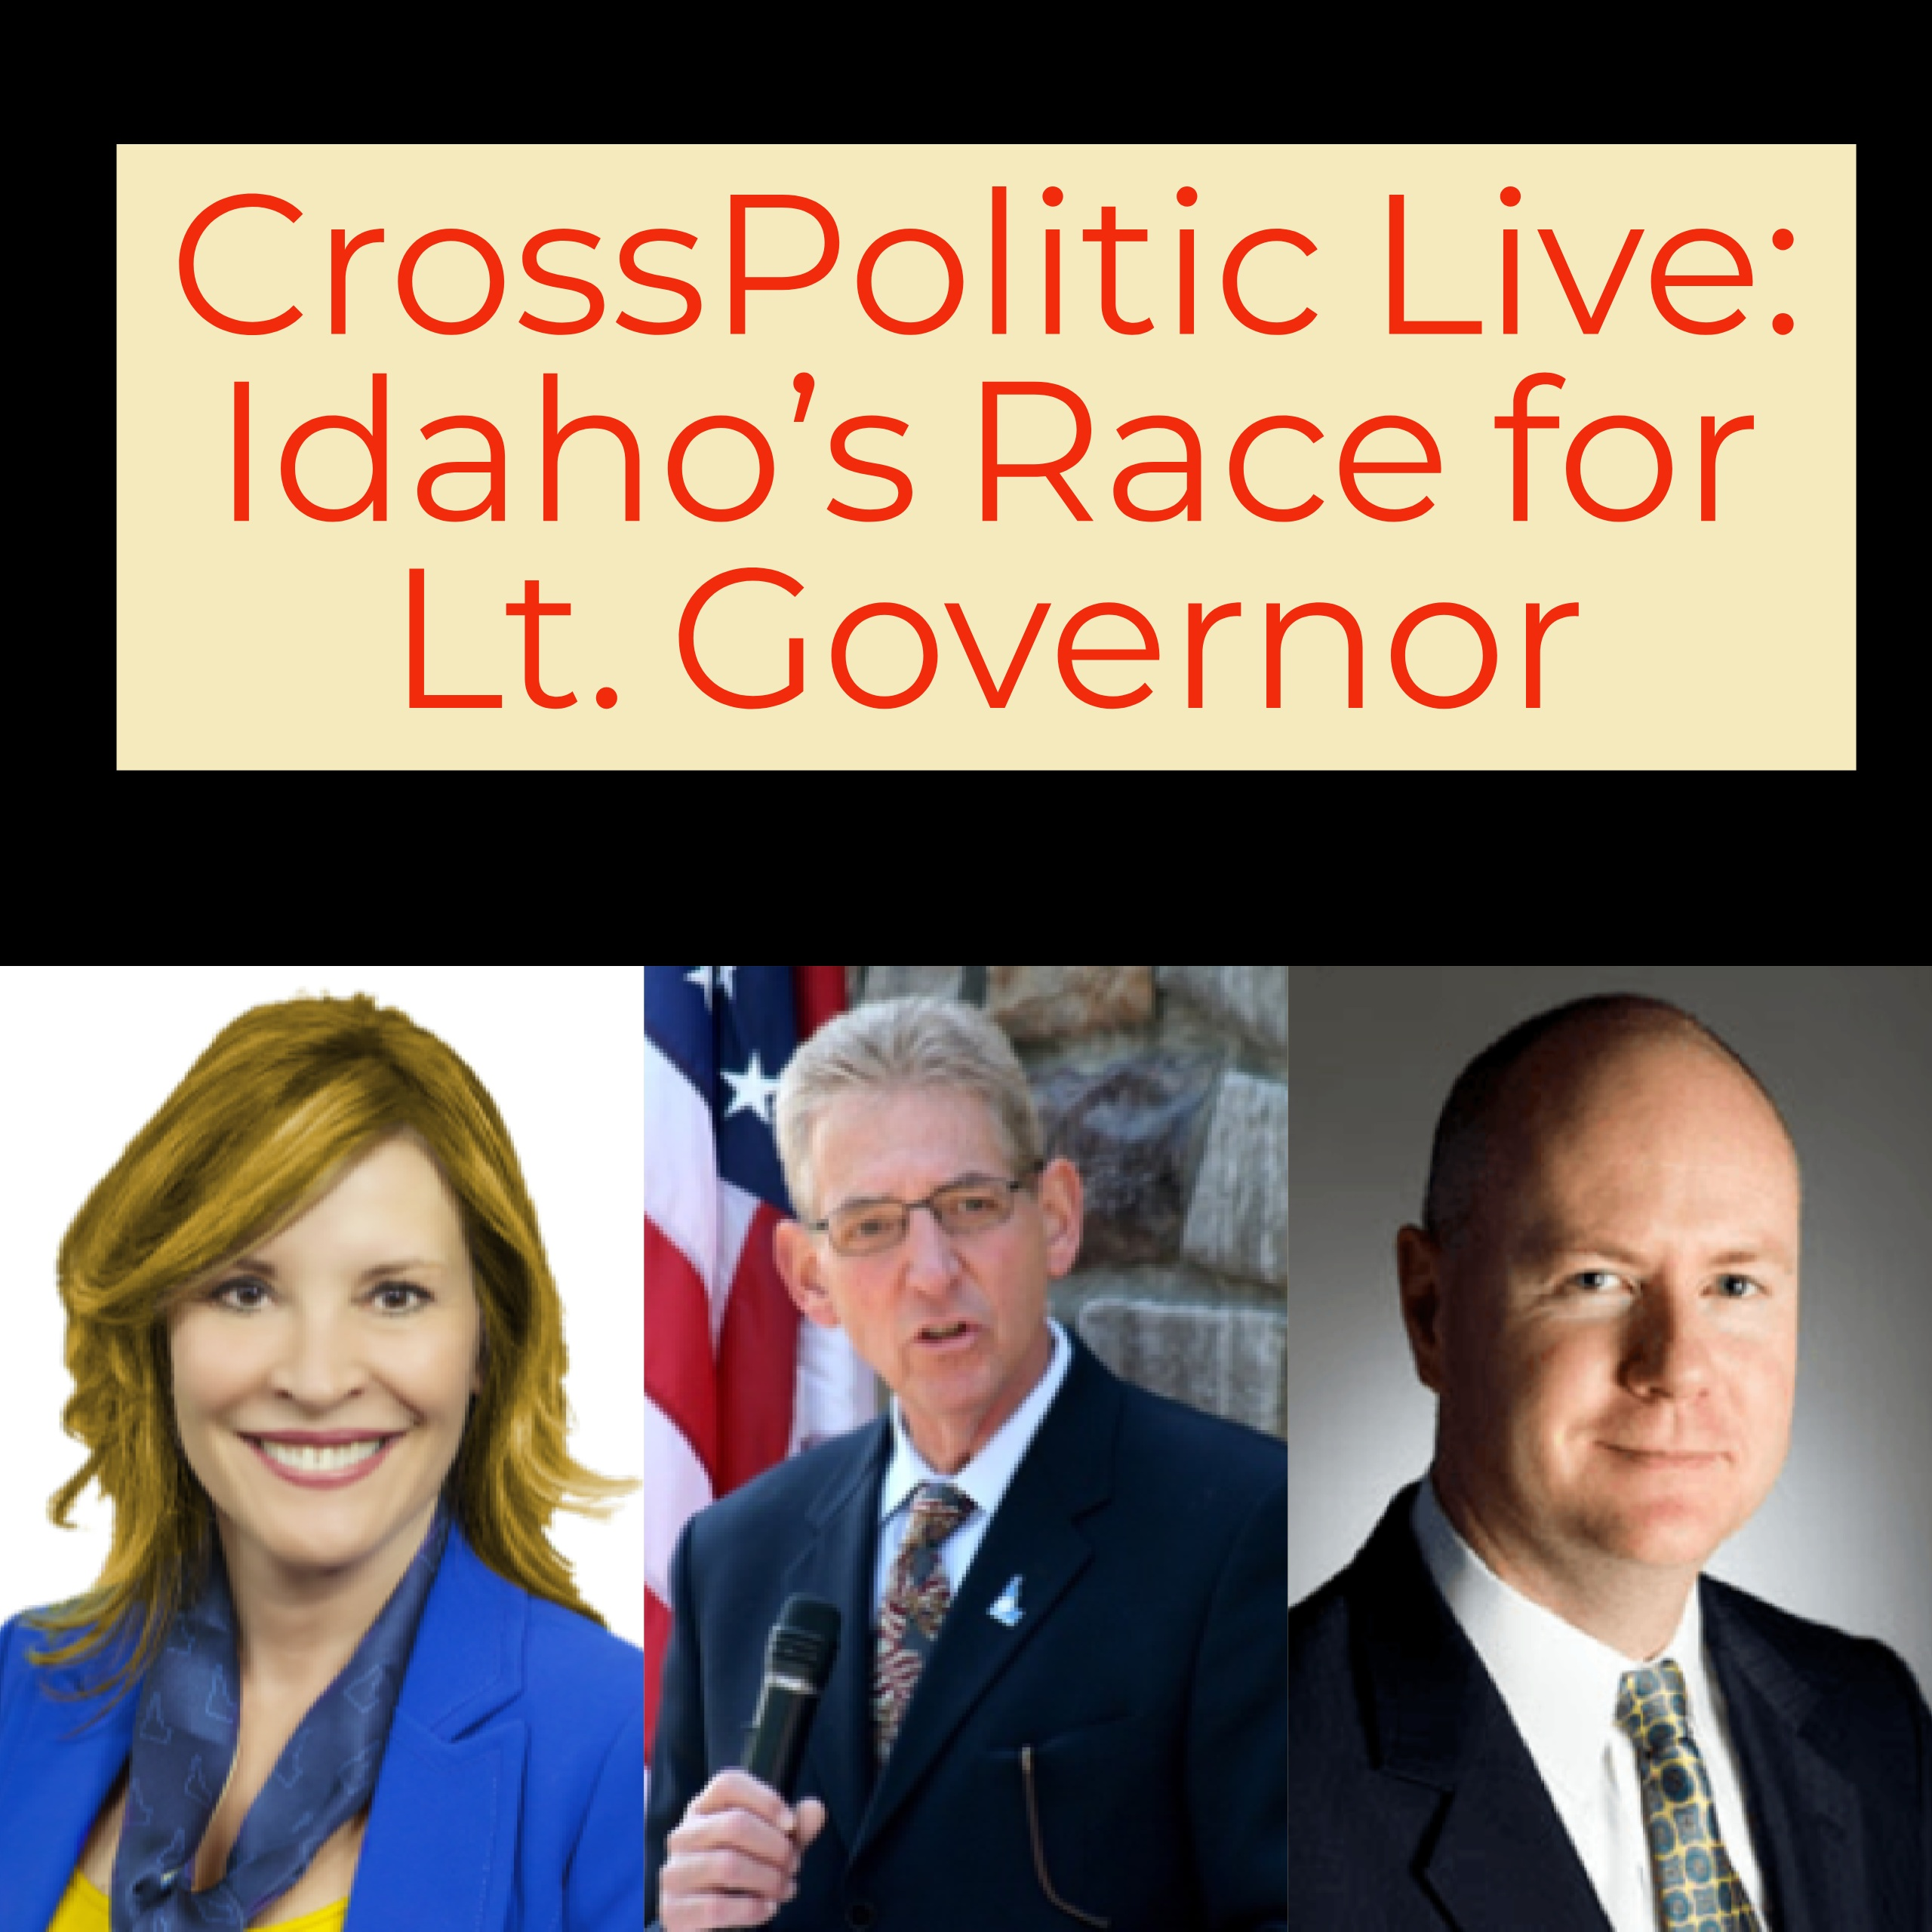 CrossPolitic Live: Idaho's Race for Lt. Governor